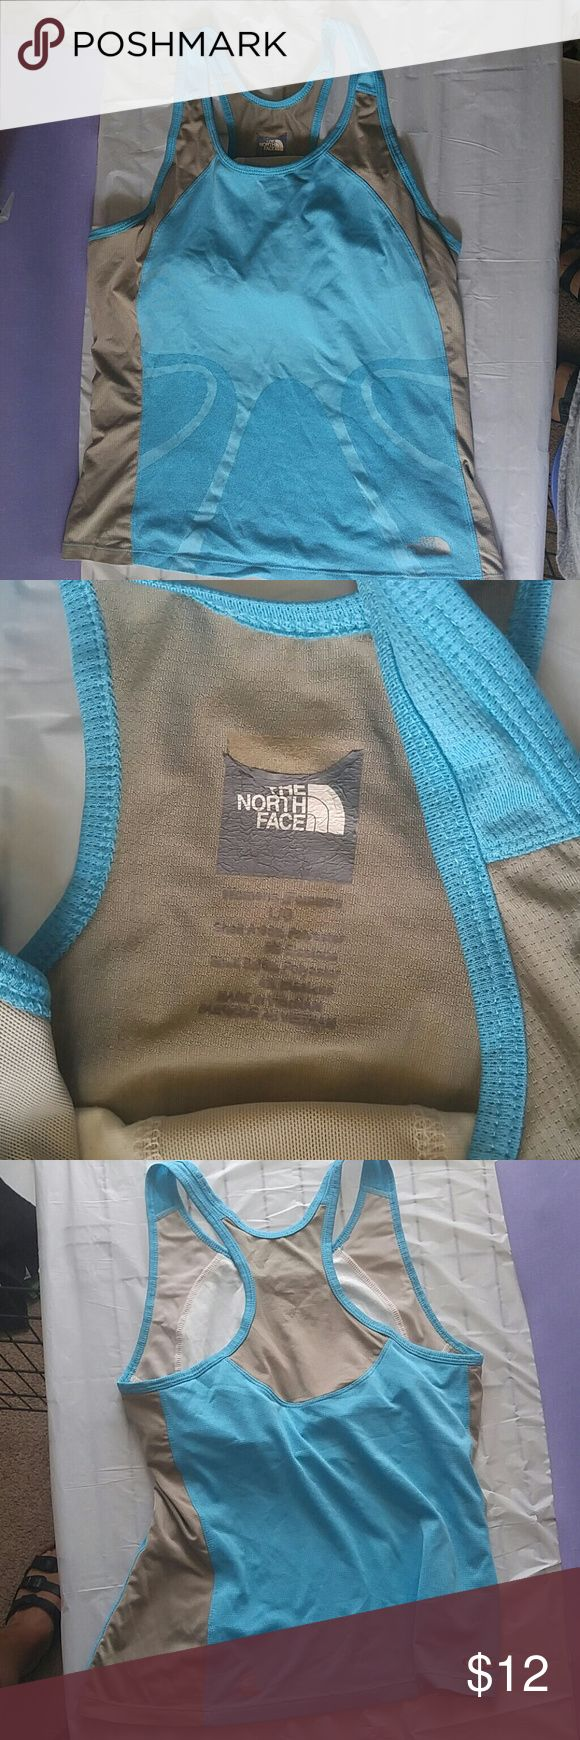 North face tank top Vapor wick.  Unlined bra. North Face Tops Tank Tops